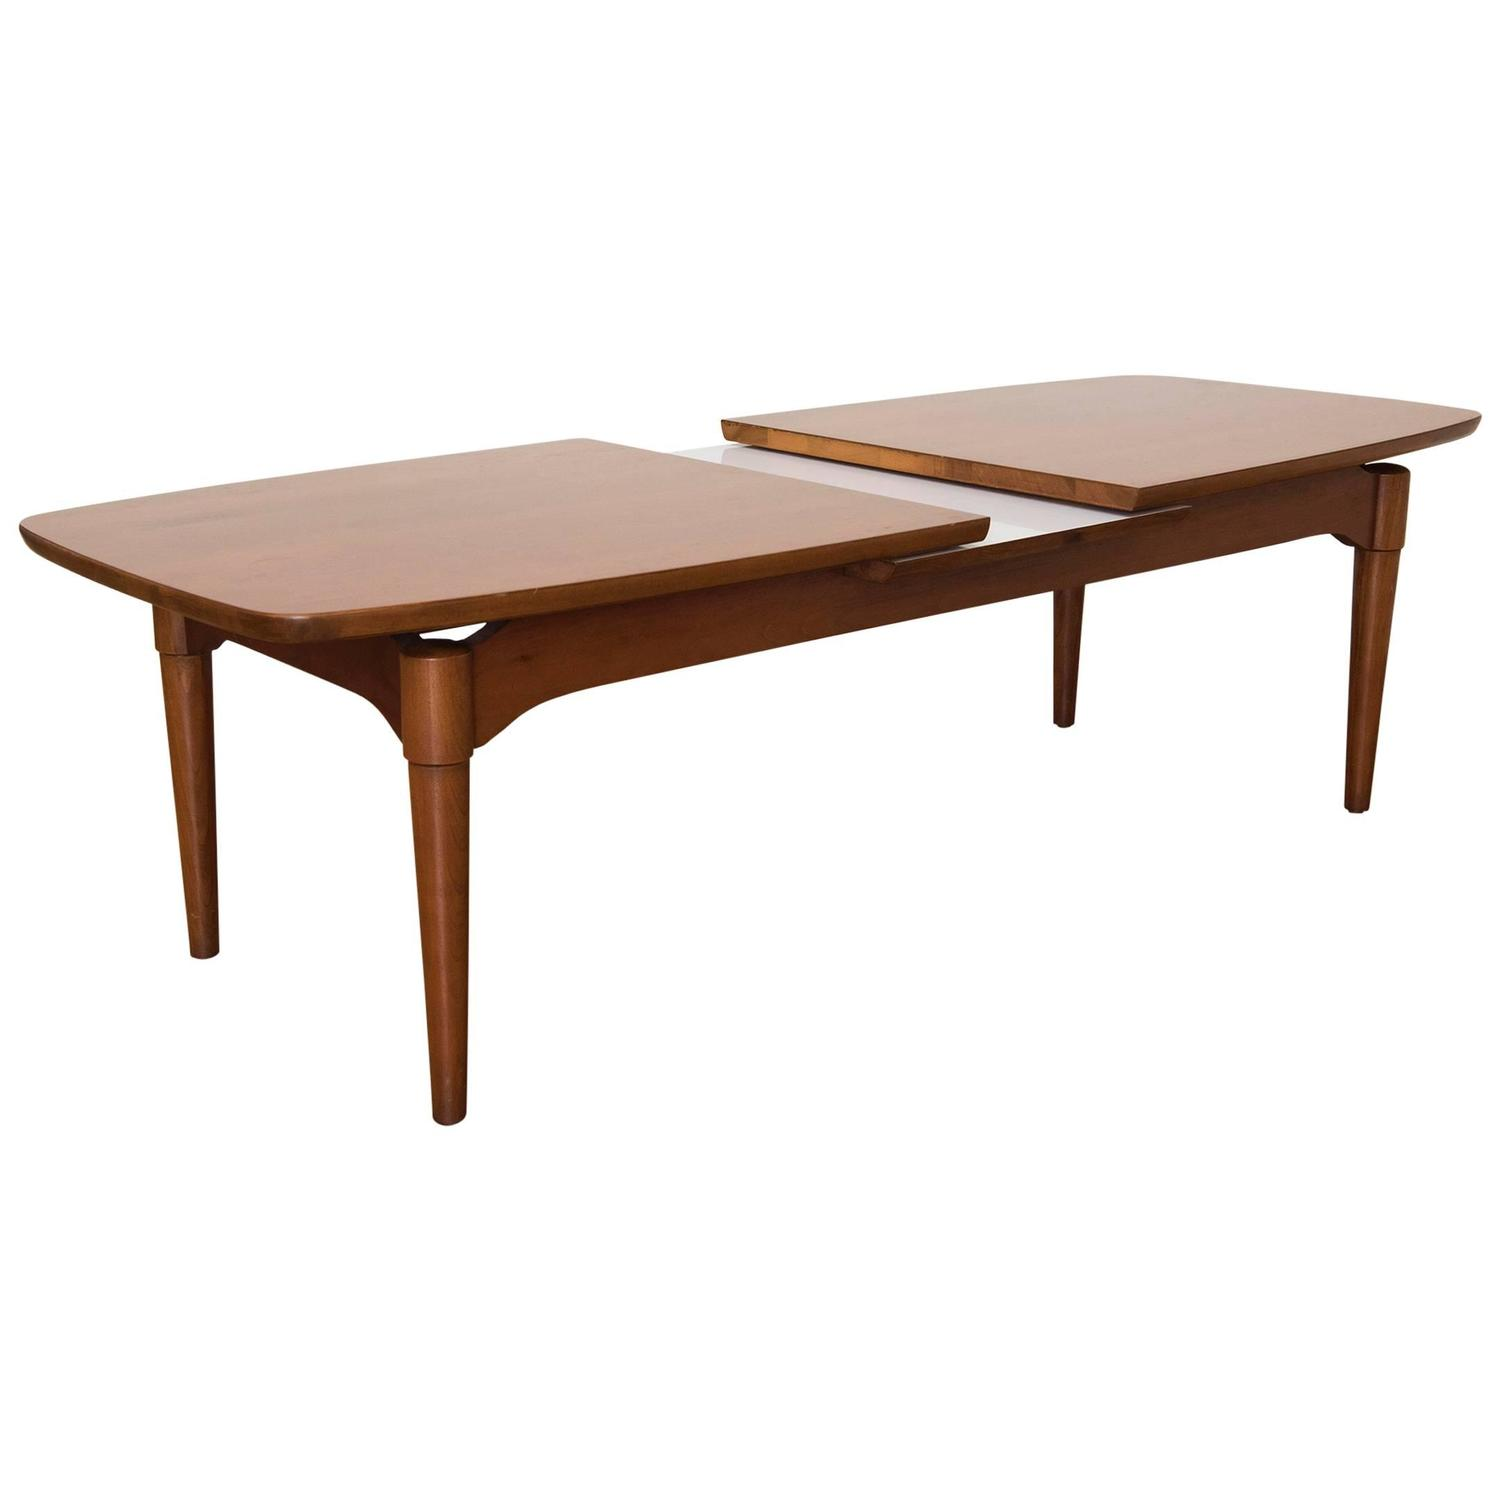 Adjustable Teak Danish Modern Style Surfboard Coffee Table At 1stdibs